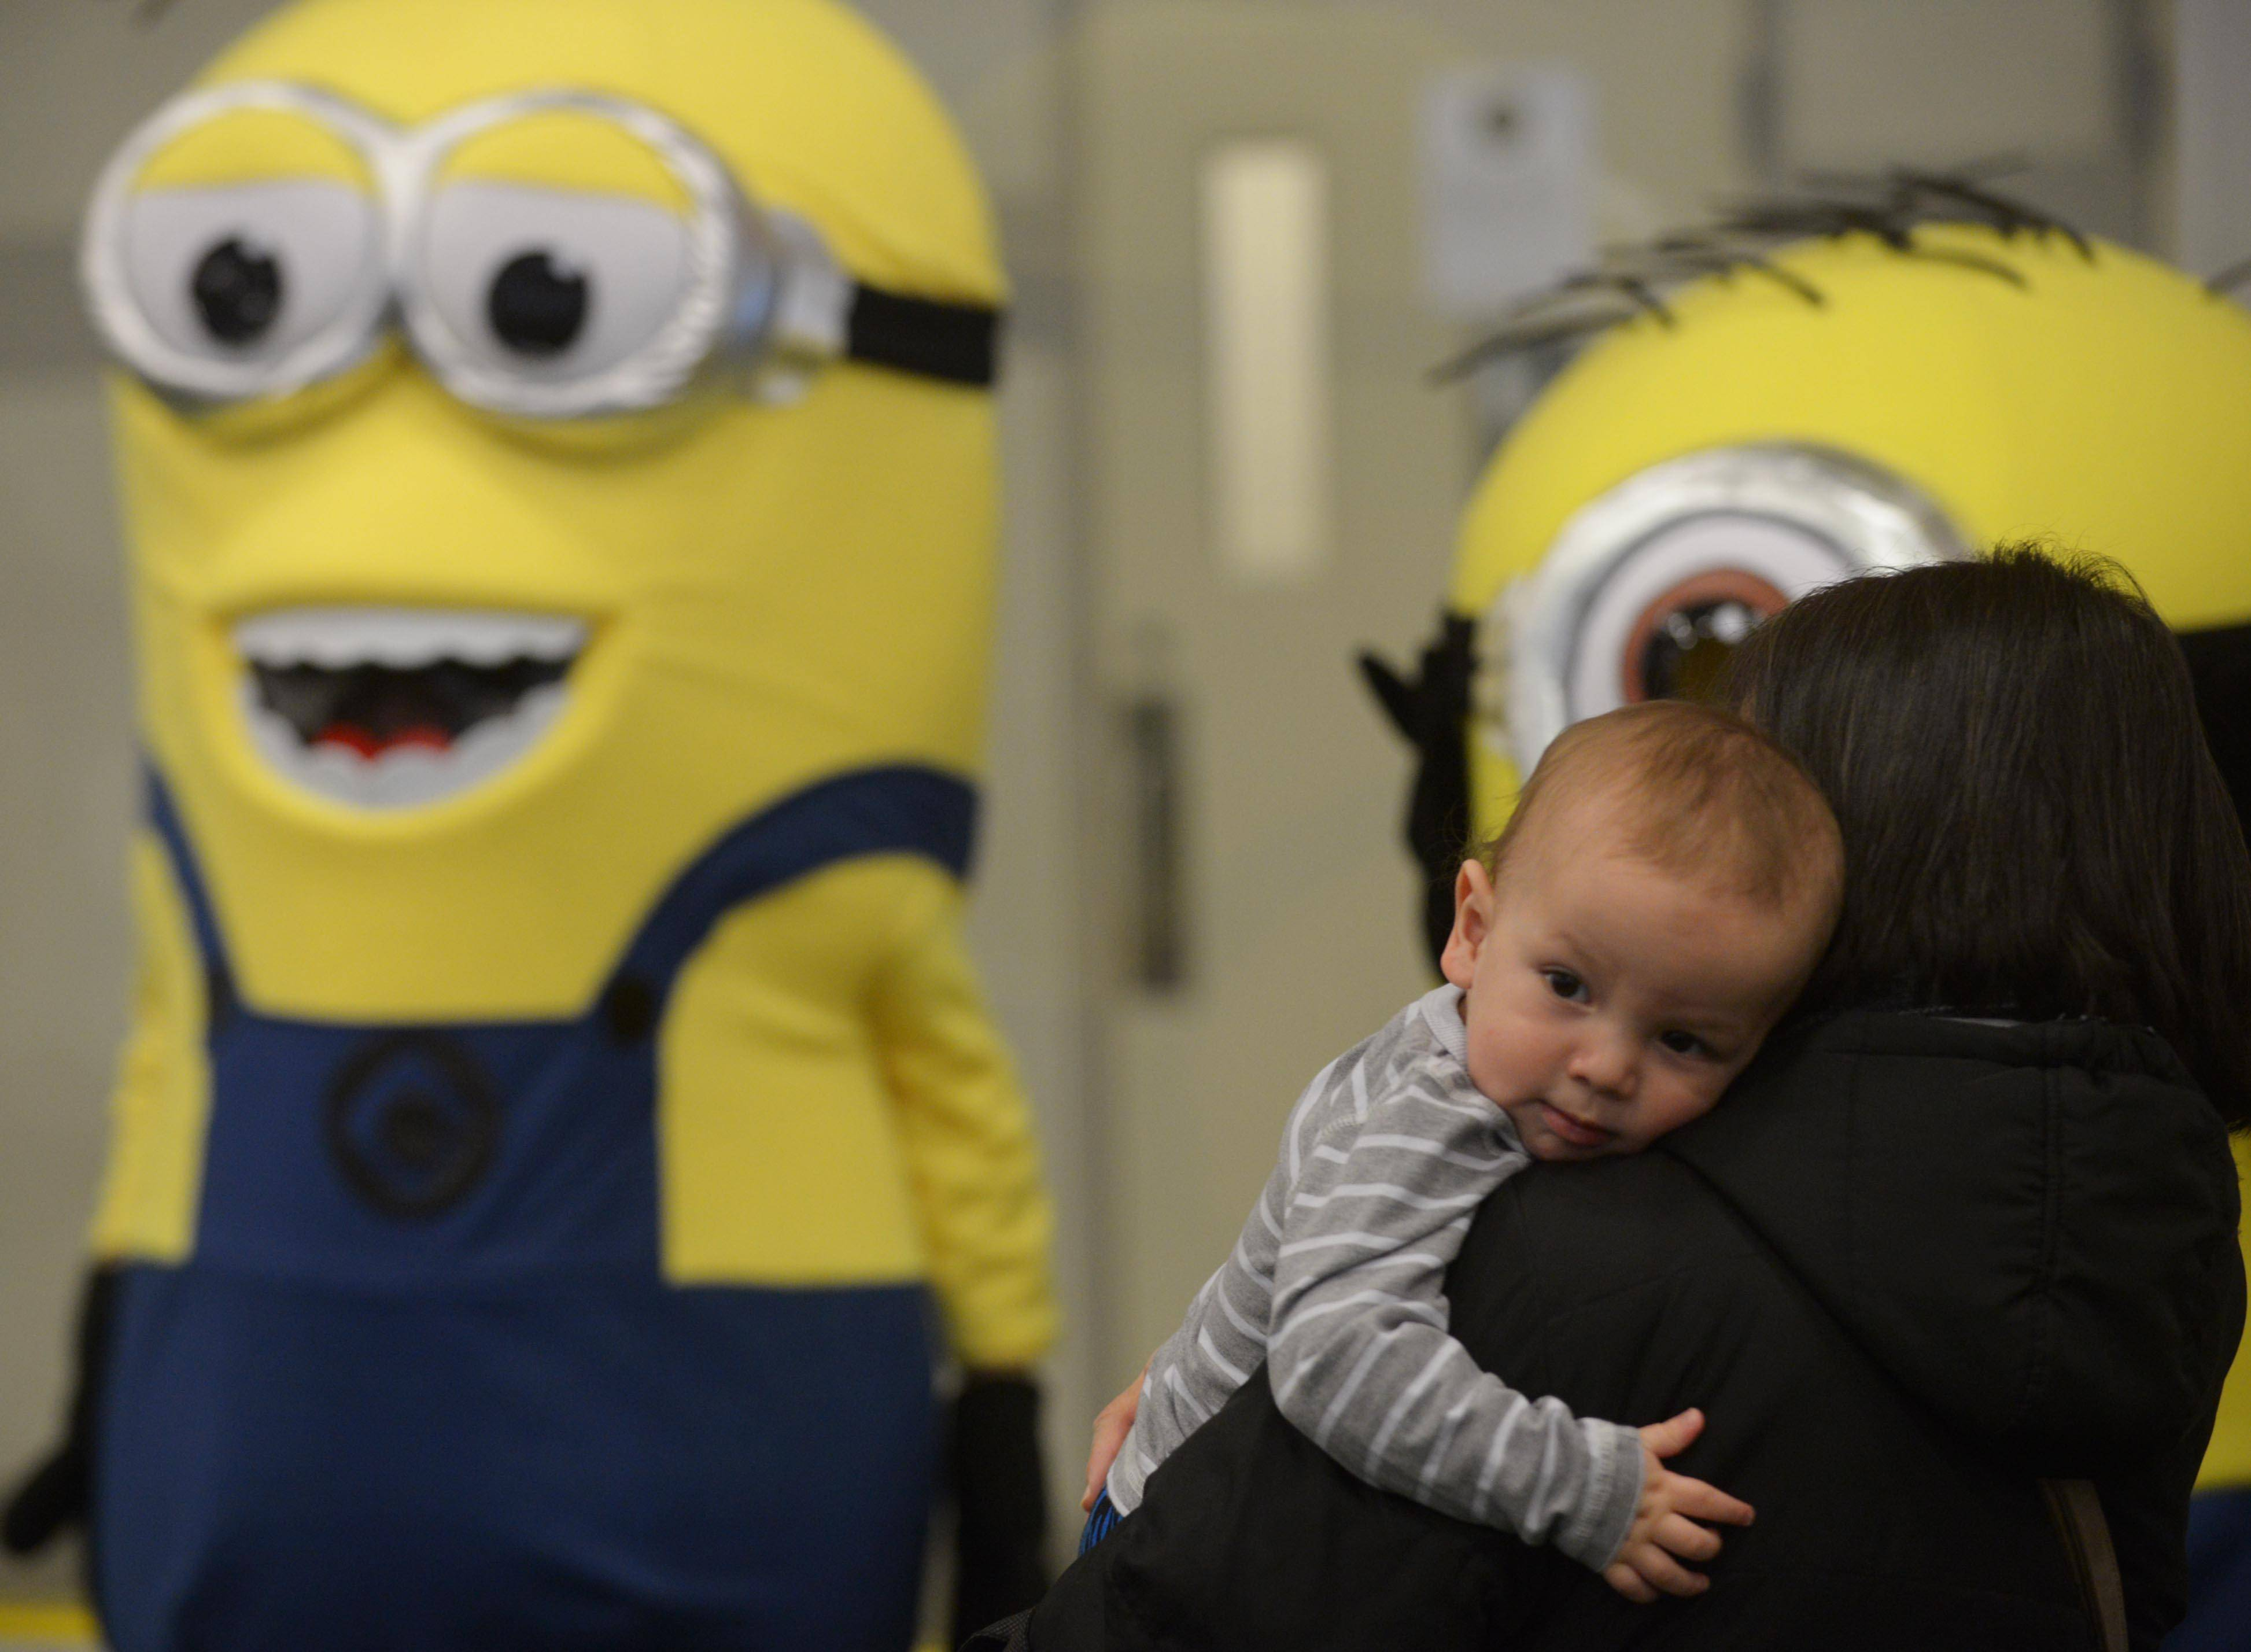 Calvin Luebanos, 1, of Round Lake Beach holds onto his grandma, Amparo Luebanos, as she encourages him to visit with the Minions during the Community Block Party/Expo and Craft Fair at the Round Lake Beach Sports Center Saturday.